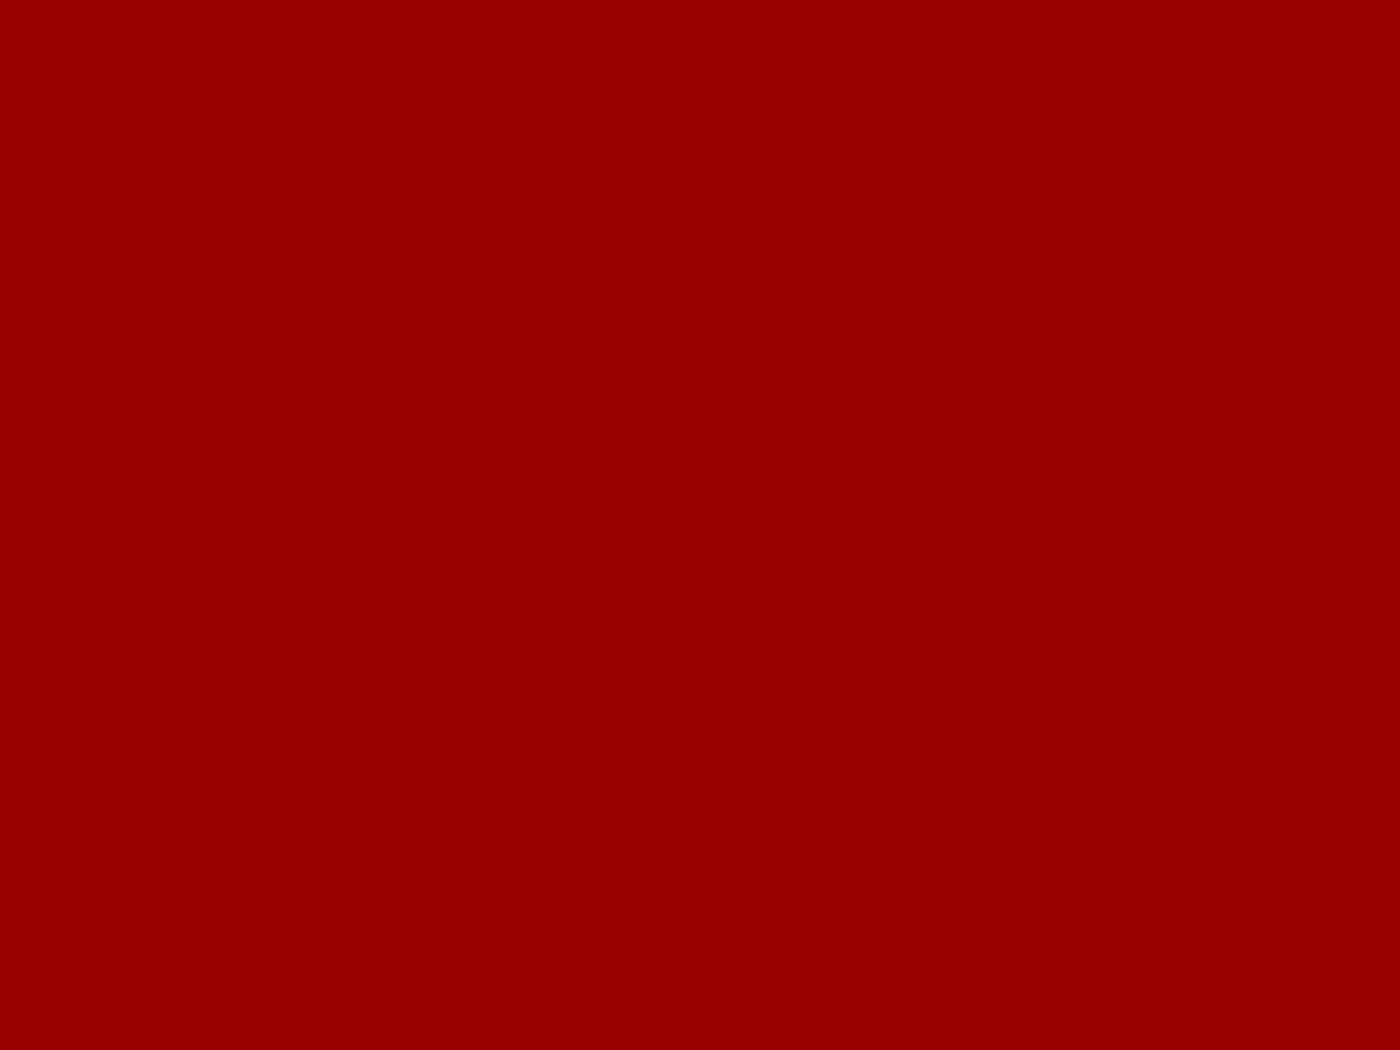 1400x1050 USC Cardinal Solid Color Background